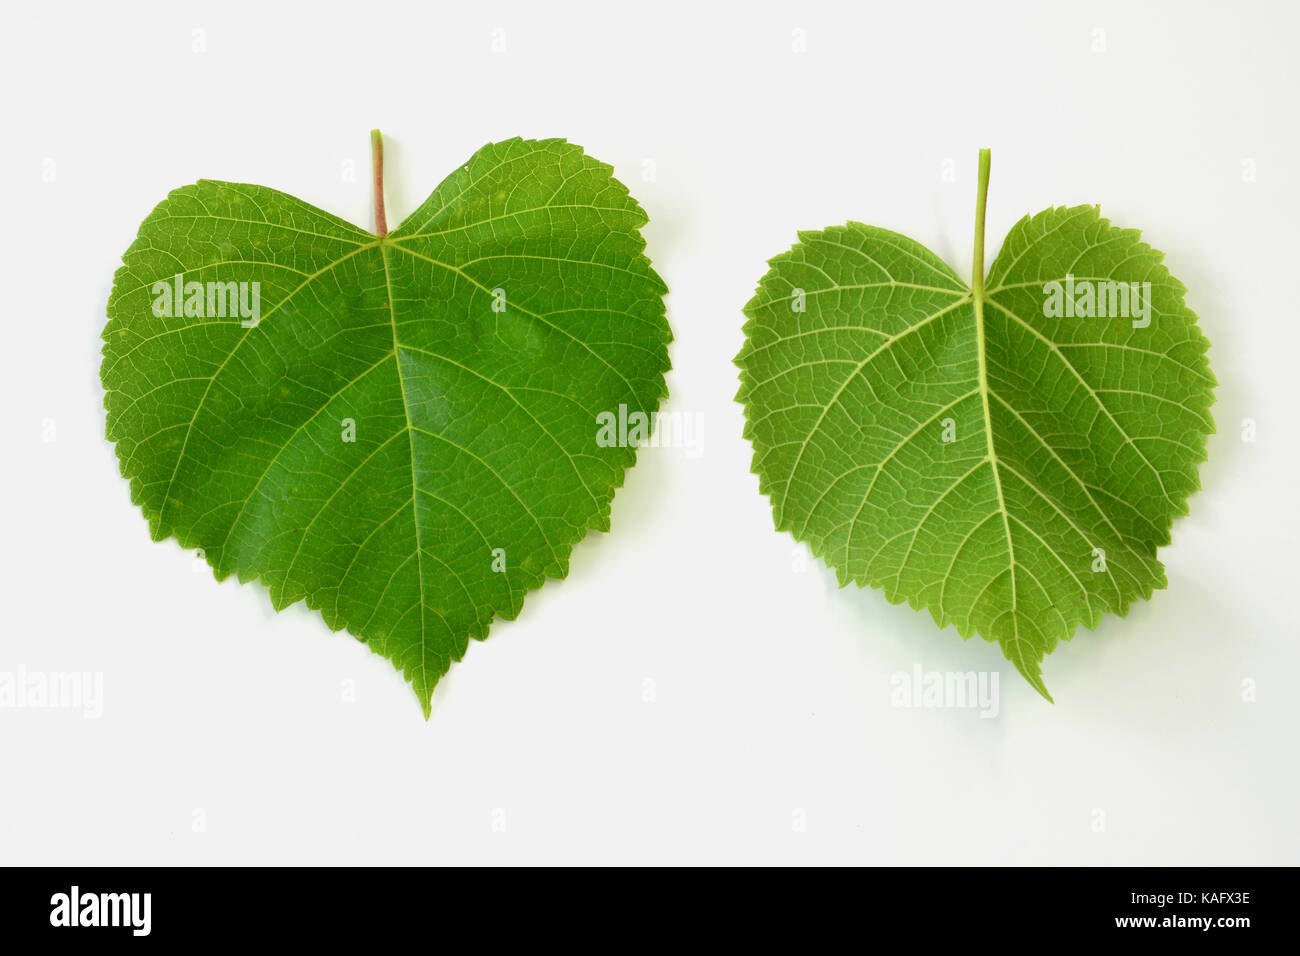 Large-leaved Lime (Tilia platyphyllos) leaves, front and backside, studio picture Stock Photo